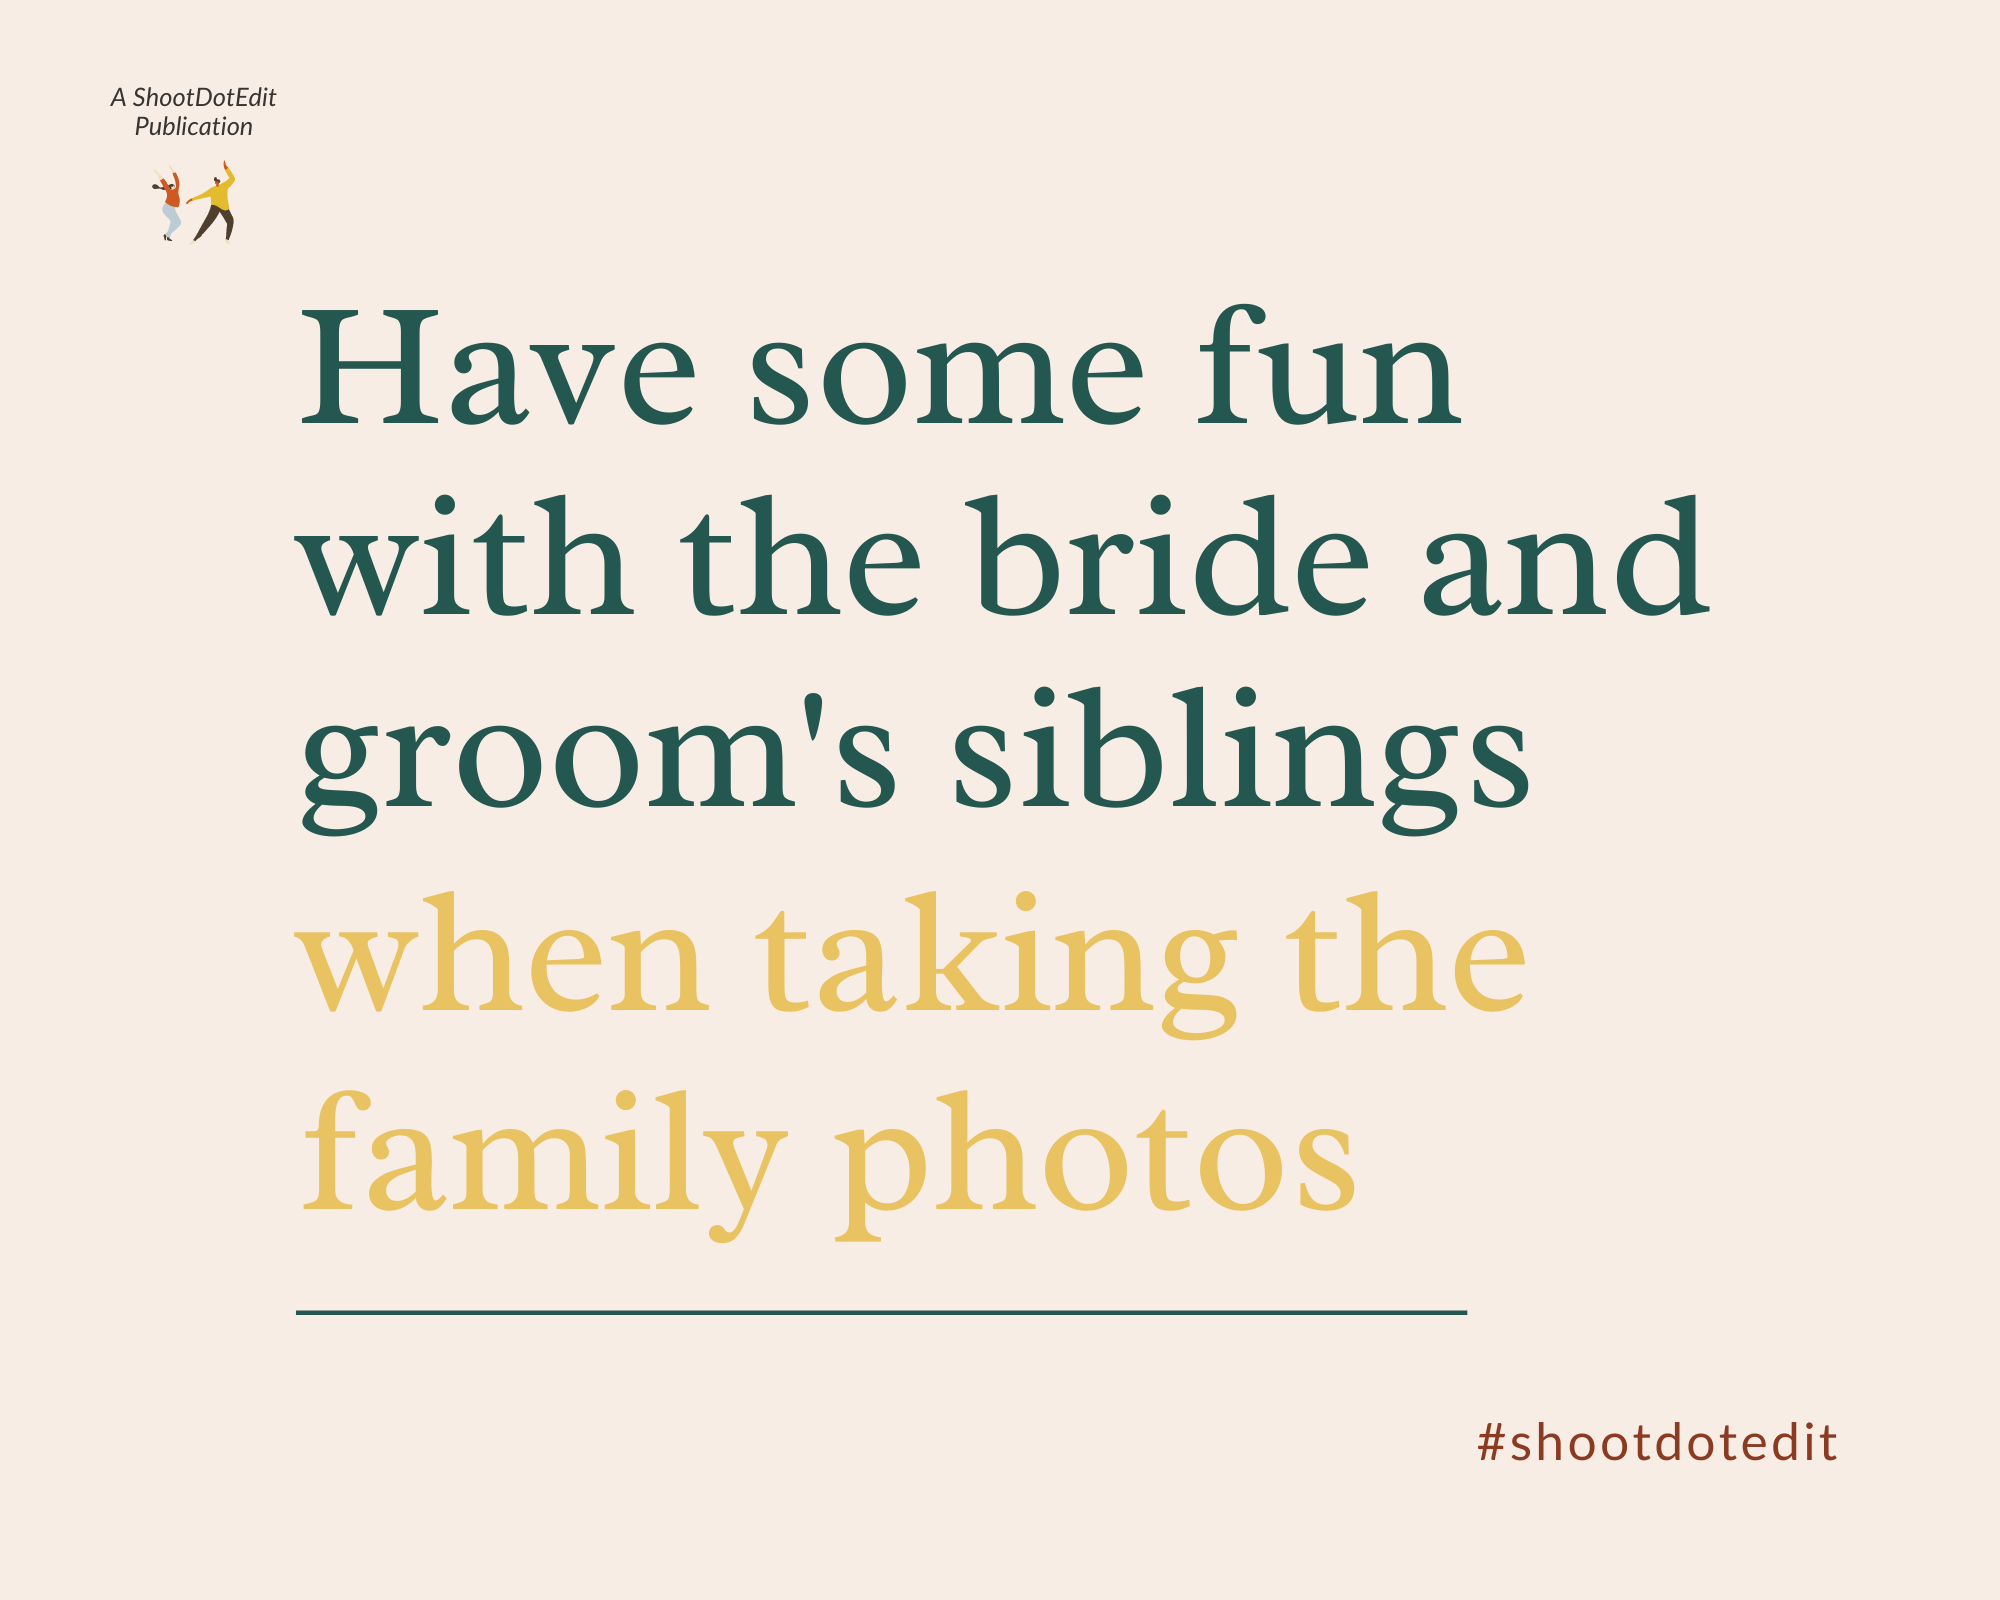 Infographic stating have some fun with the bride and groom's siblings when taking the family photos